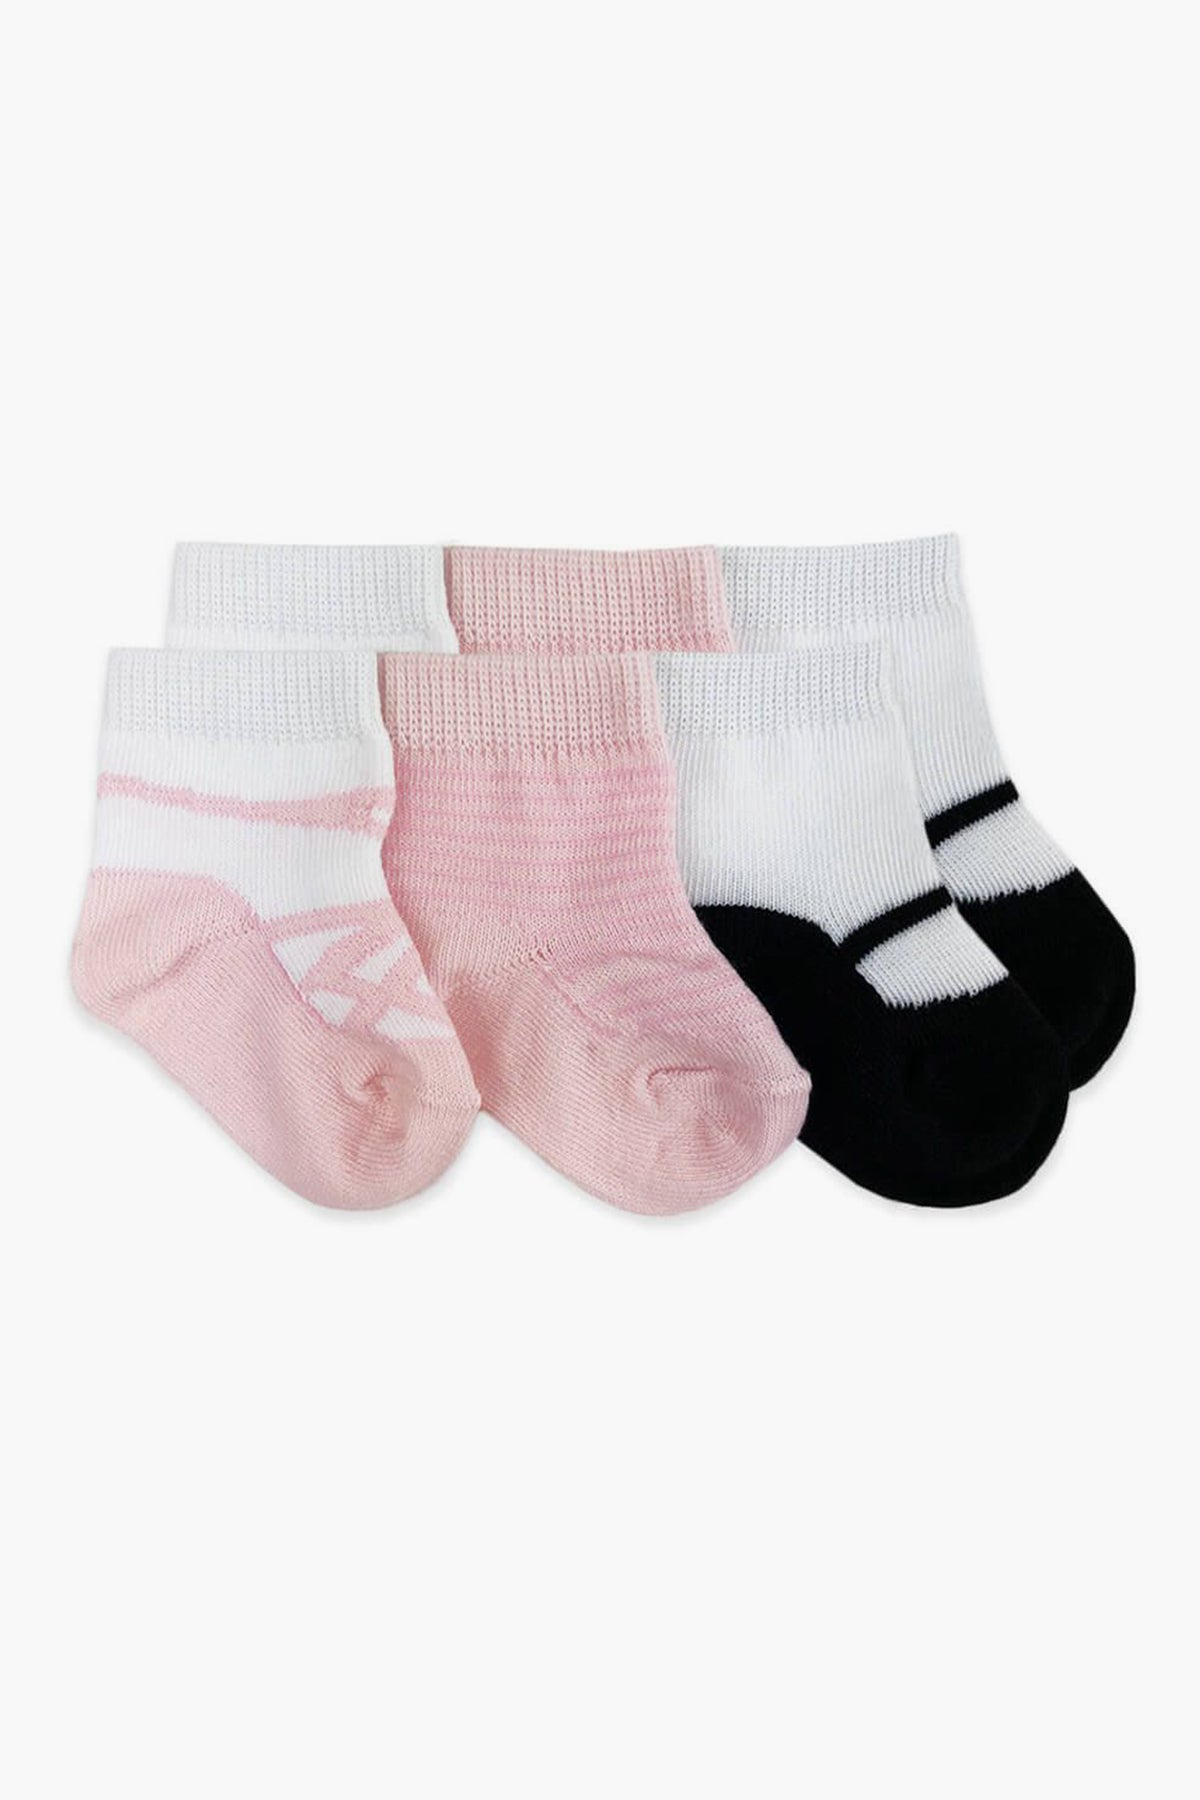 Jefferies Socks Ballet Slipper Baby Socks 3-Pack